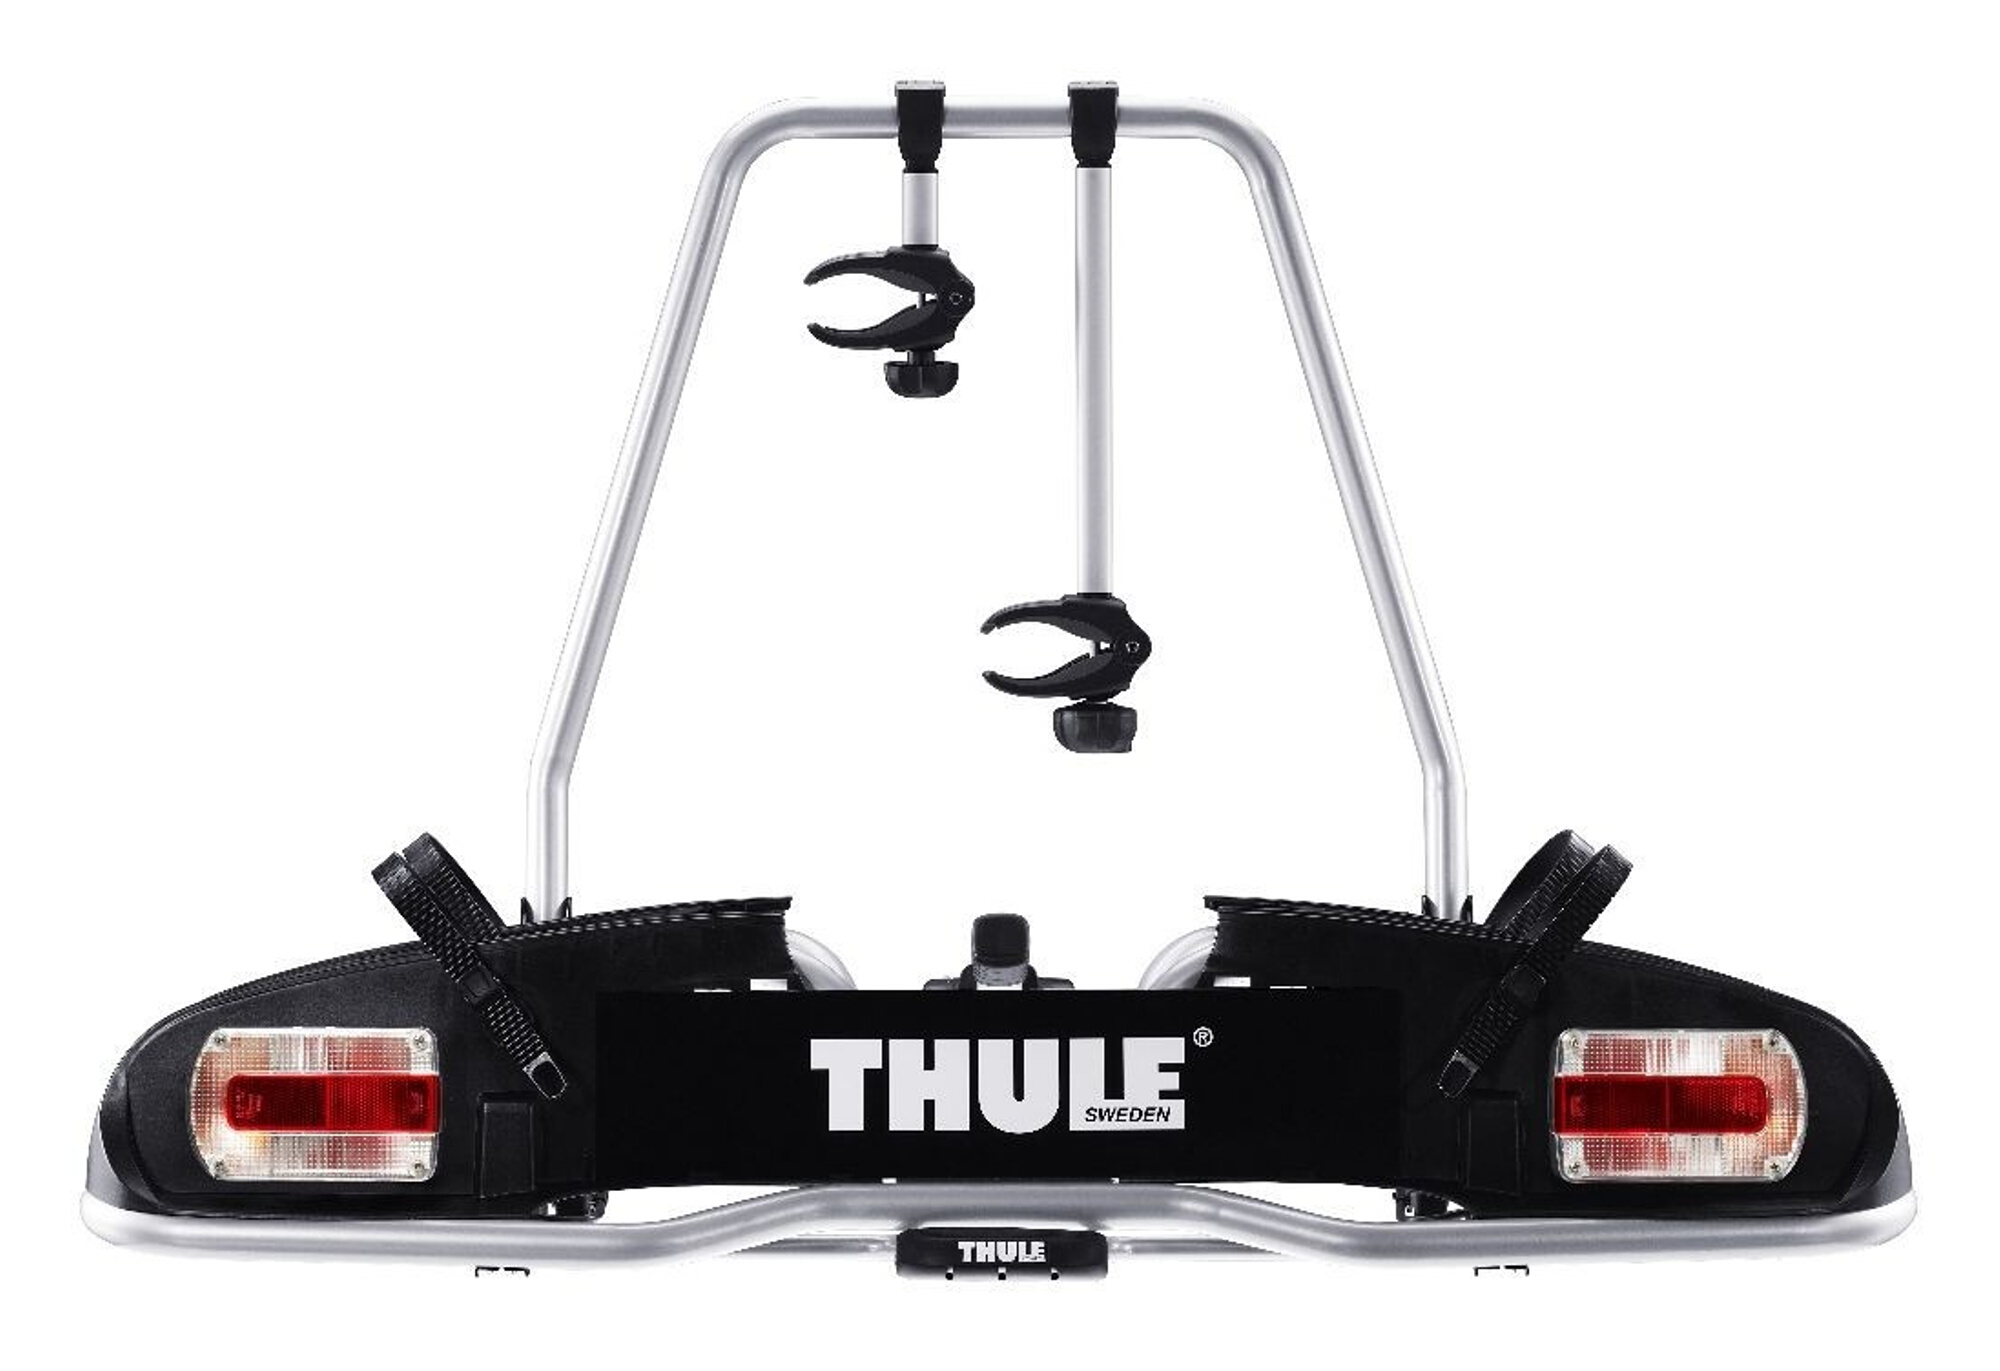 thule porte v lo pour boule d attelage europower 916 pour 2 velos. Black Bedroom Furniture Sets. Home Design Ideas